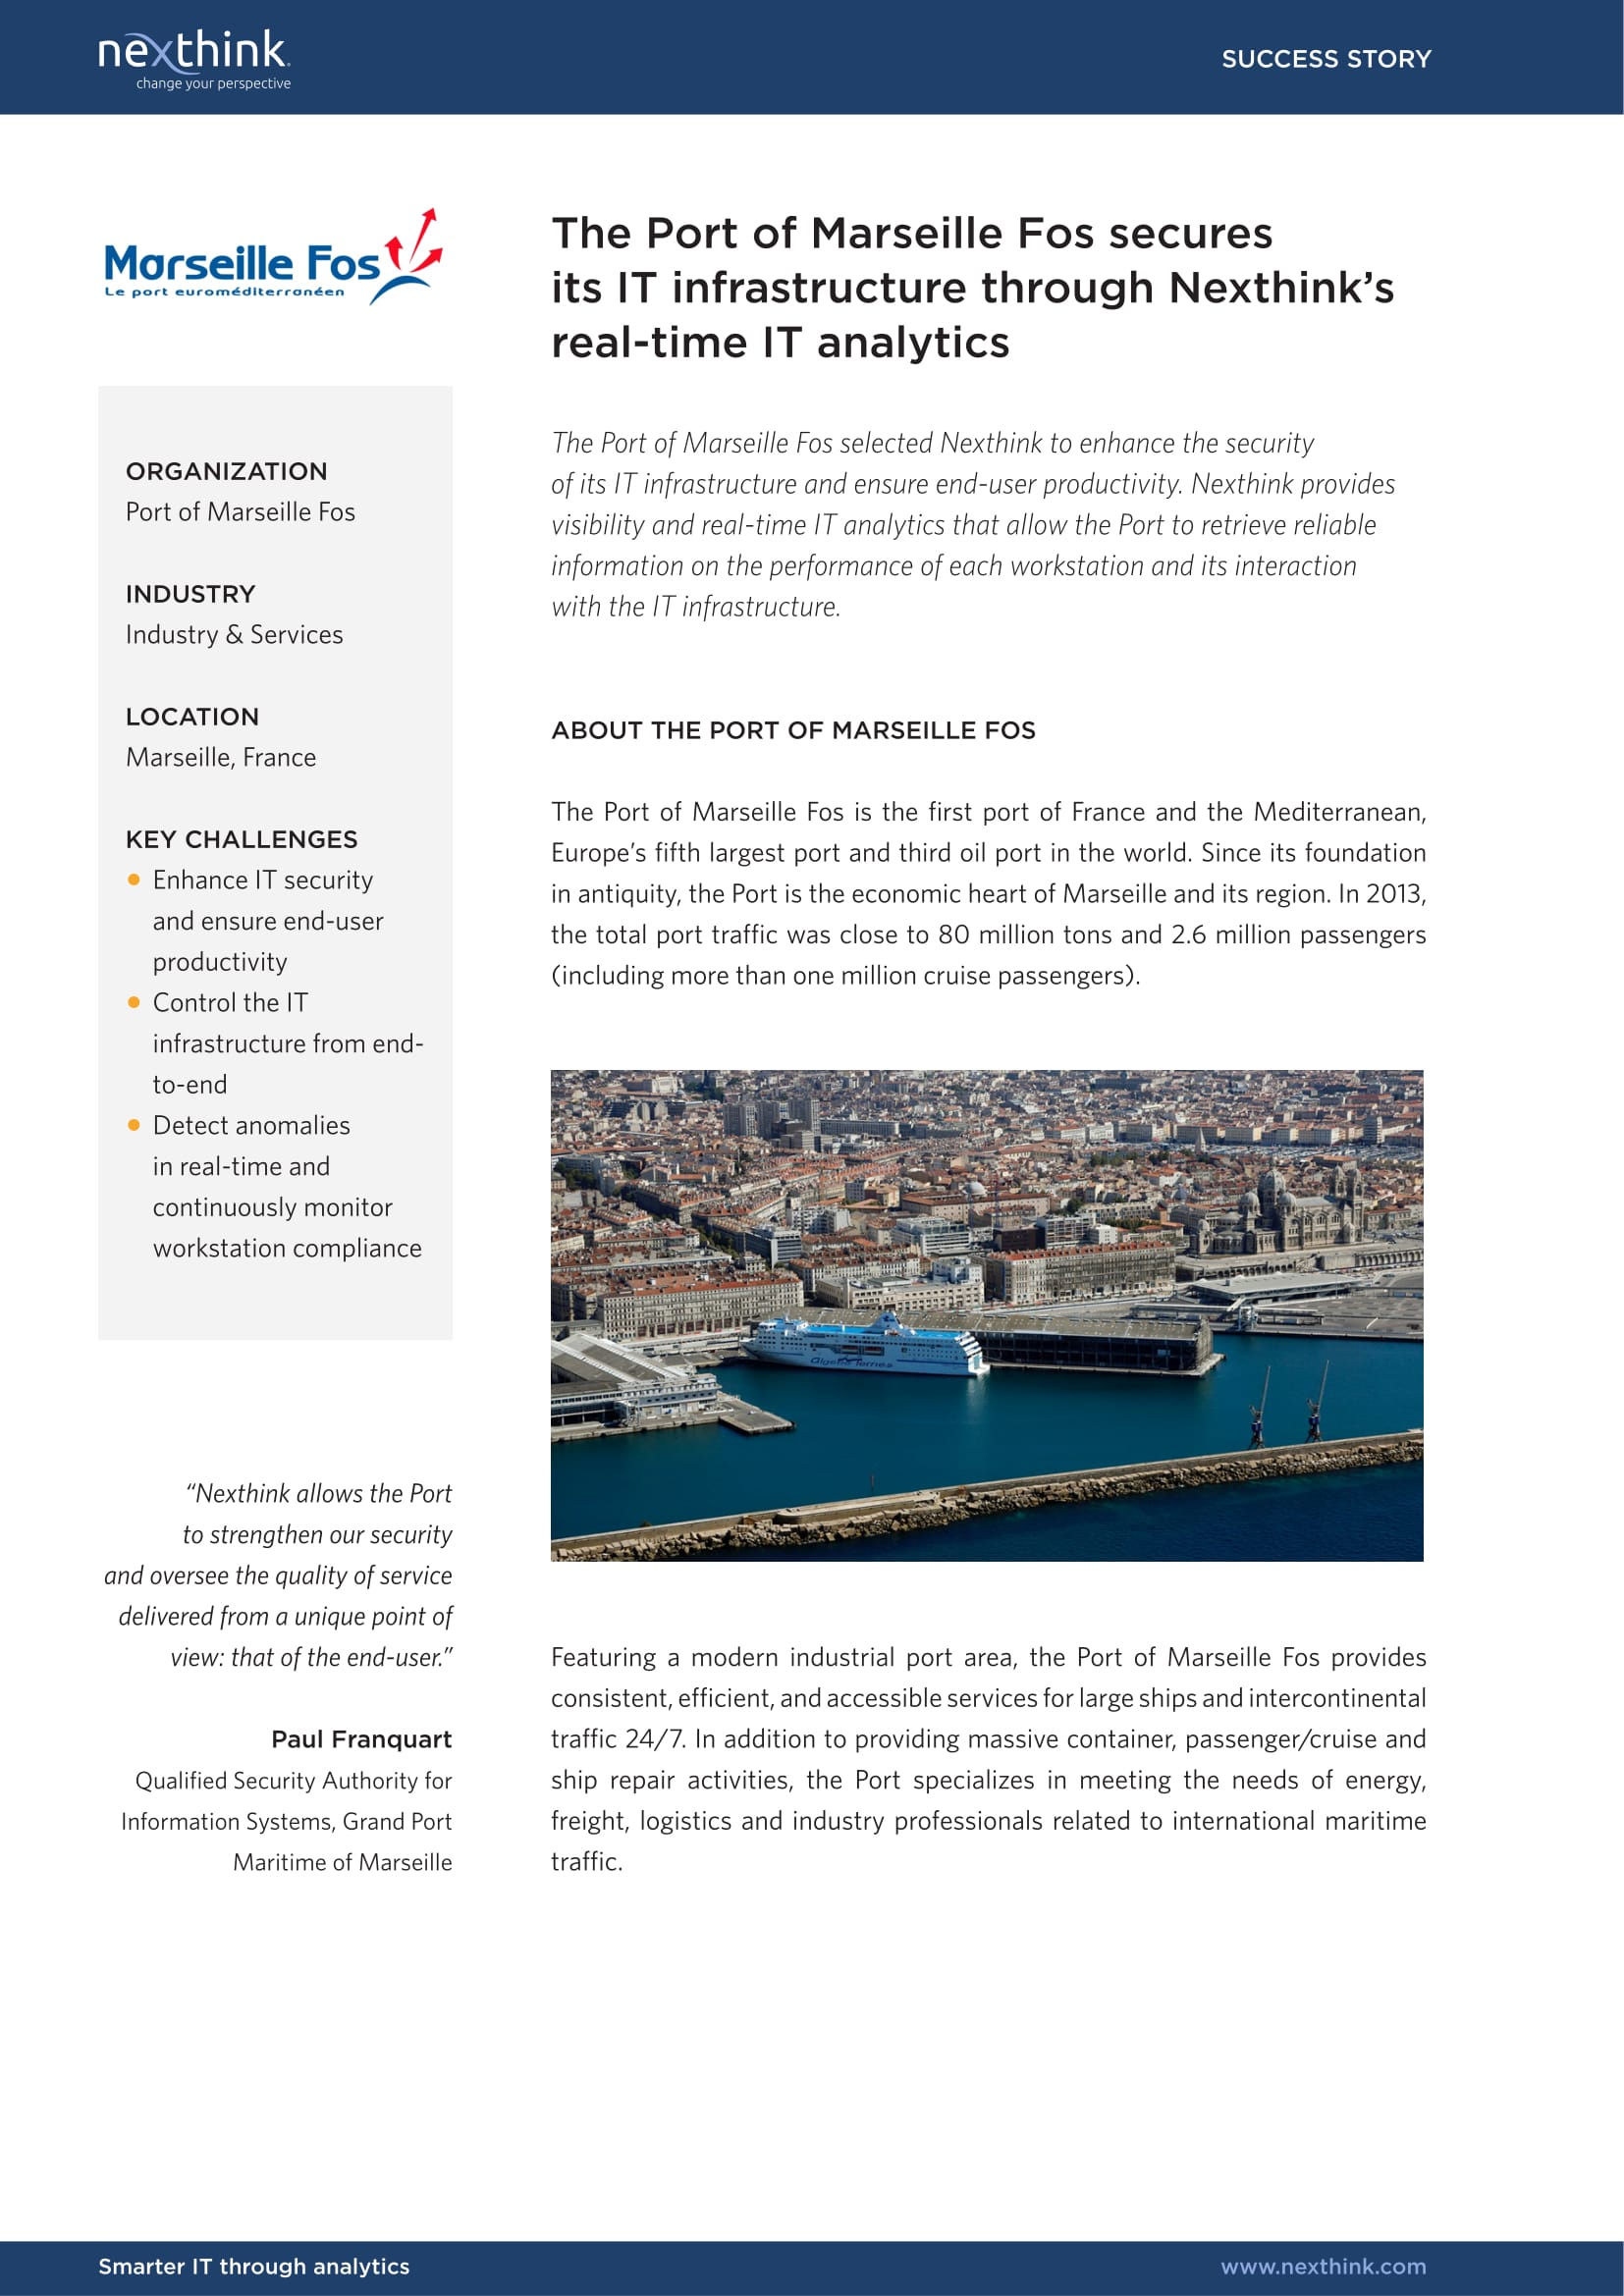 The Port of Marseille Fos secures its IT infrastructure through Nexthink's real-time IT analytics